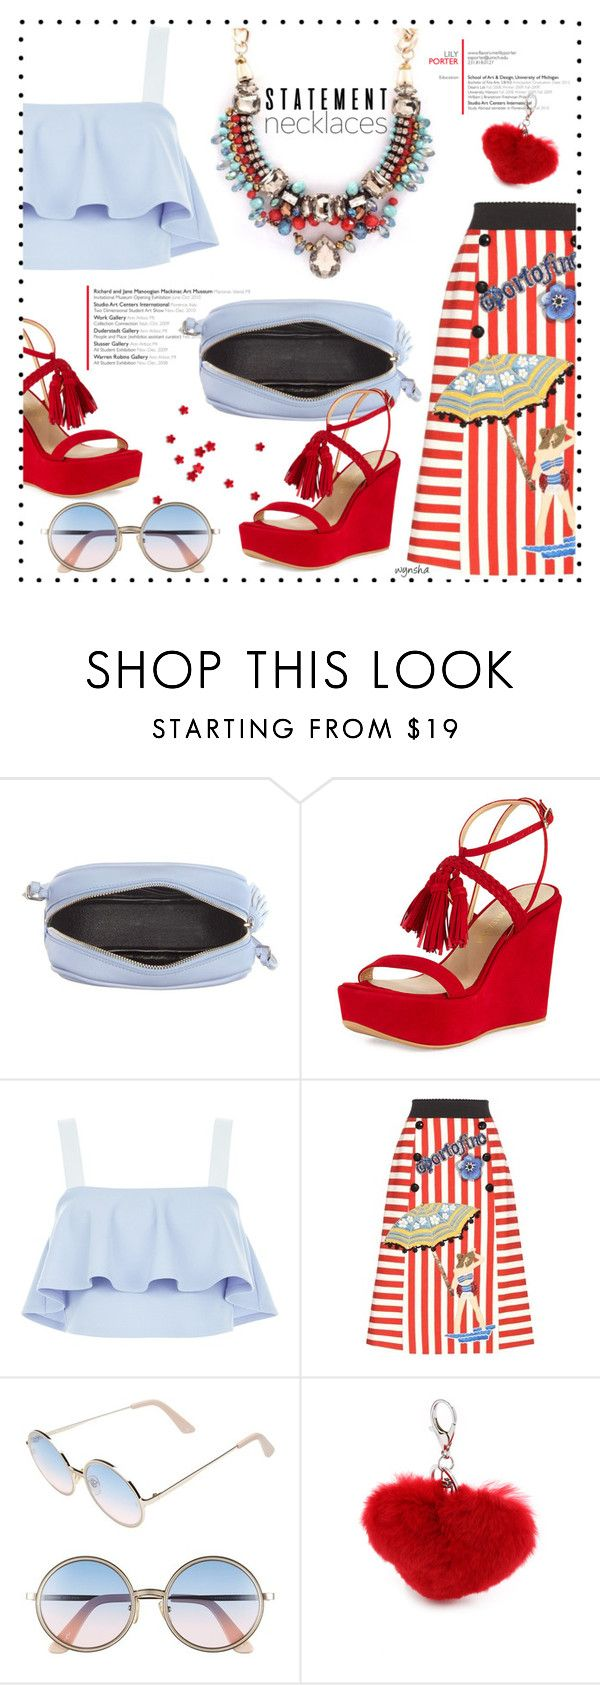 """""""Pretty Necklaces #3"""" by wynsha ❤ liked on Polyvore featuring Yves Saint Laurent, Stuart Weitzman, New Look, Dolce&Gabbana, Sunday Somewhere and Jocelyn"""